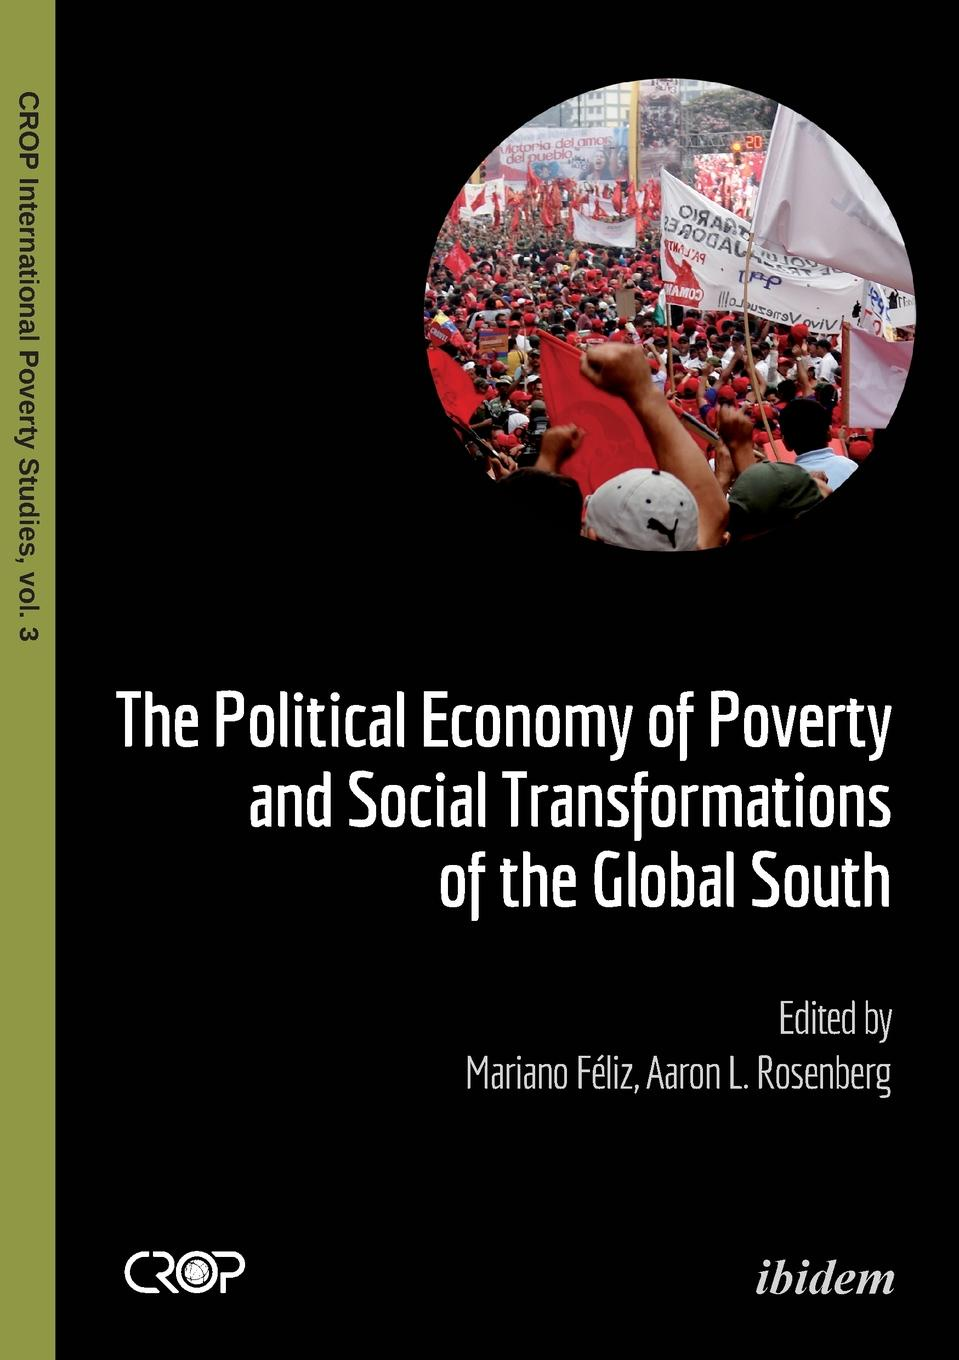 The Political Economy of Poverty and Social Transformations of the Global South. wilson uprooting poverty – the south african challenge